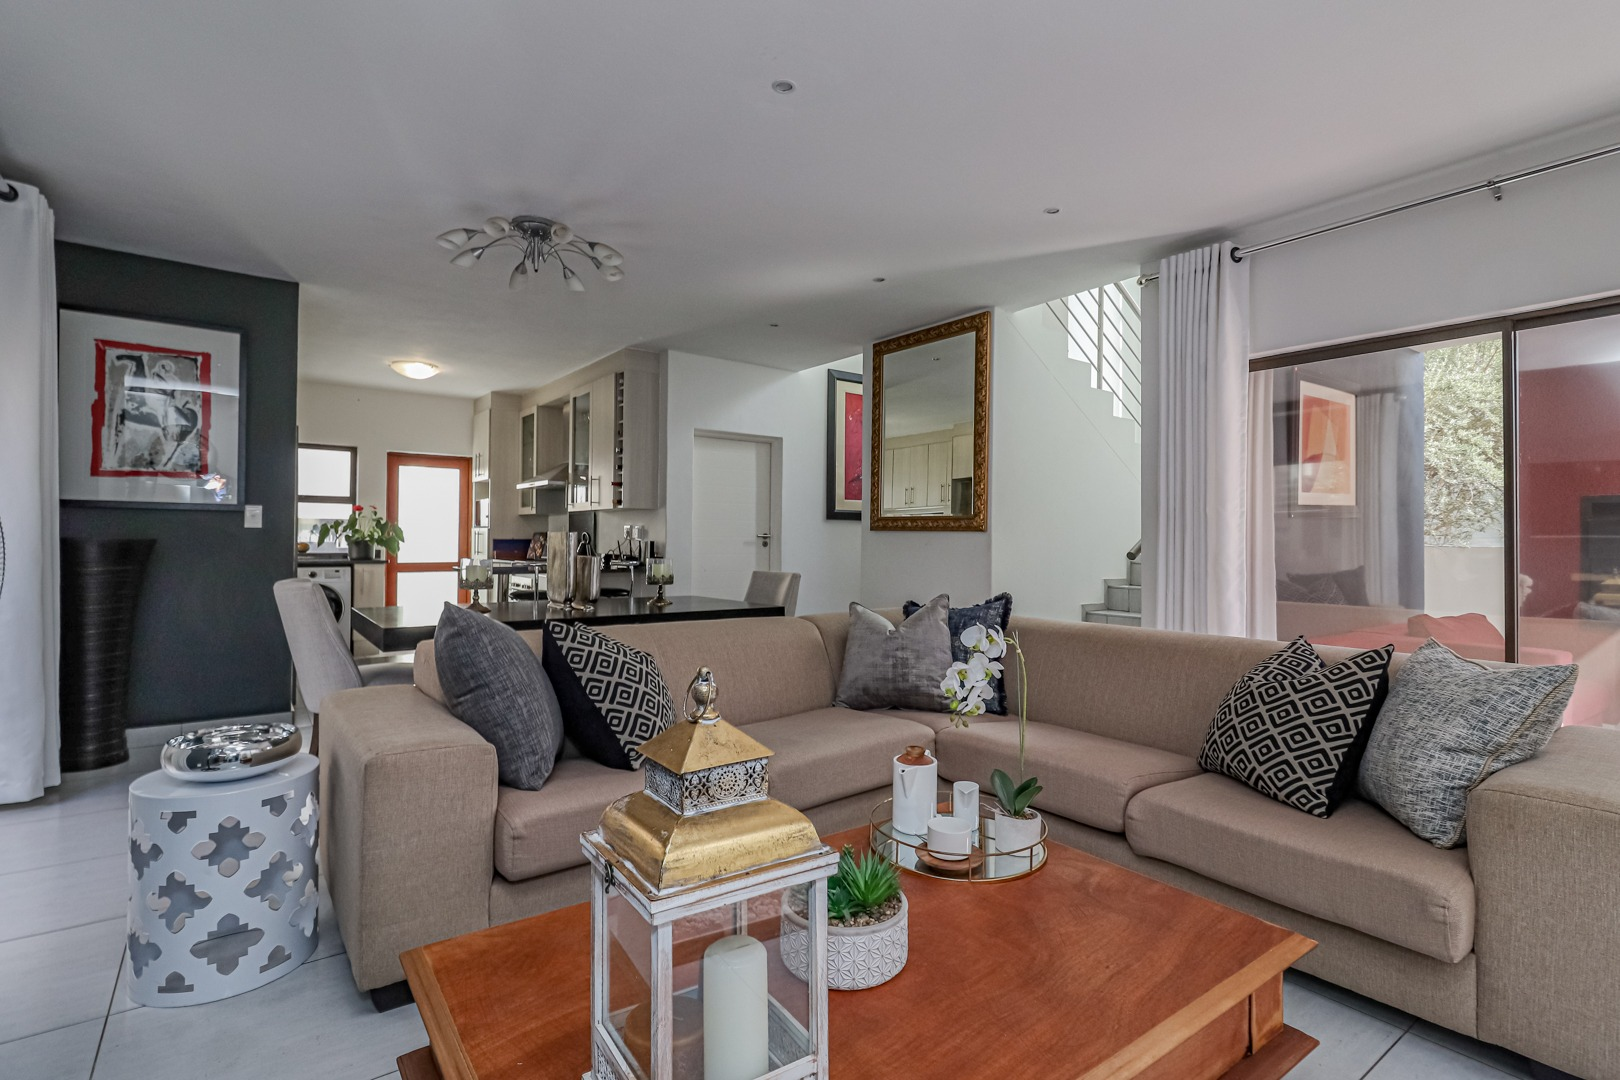 3 Bed home in a safe and secure estate